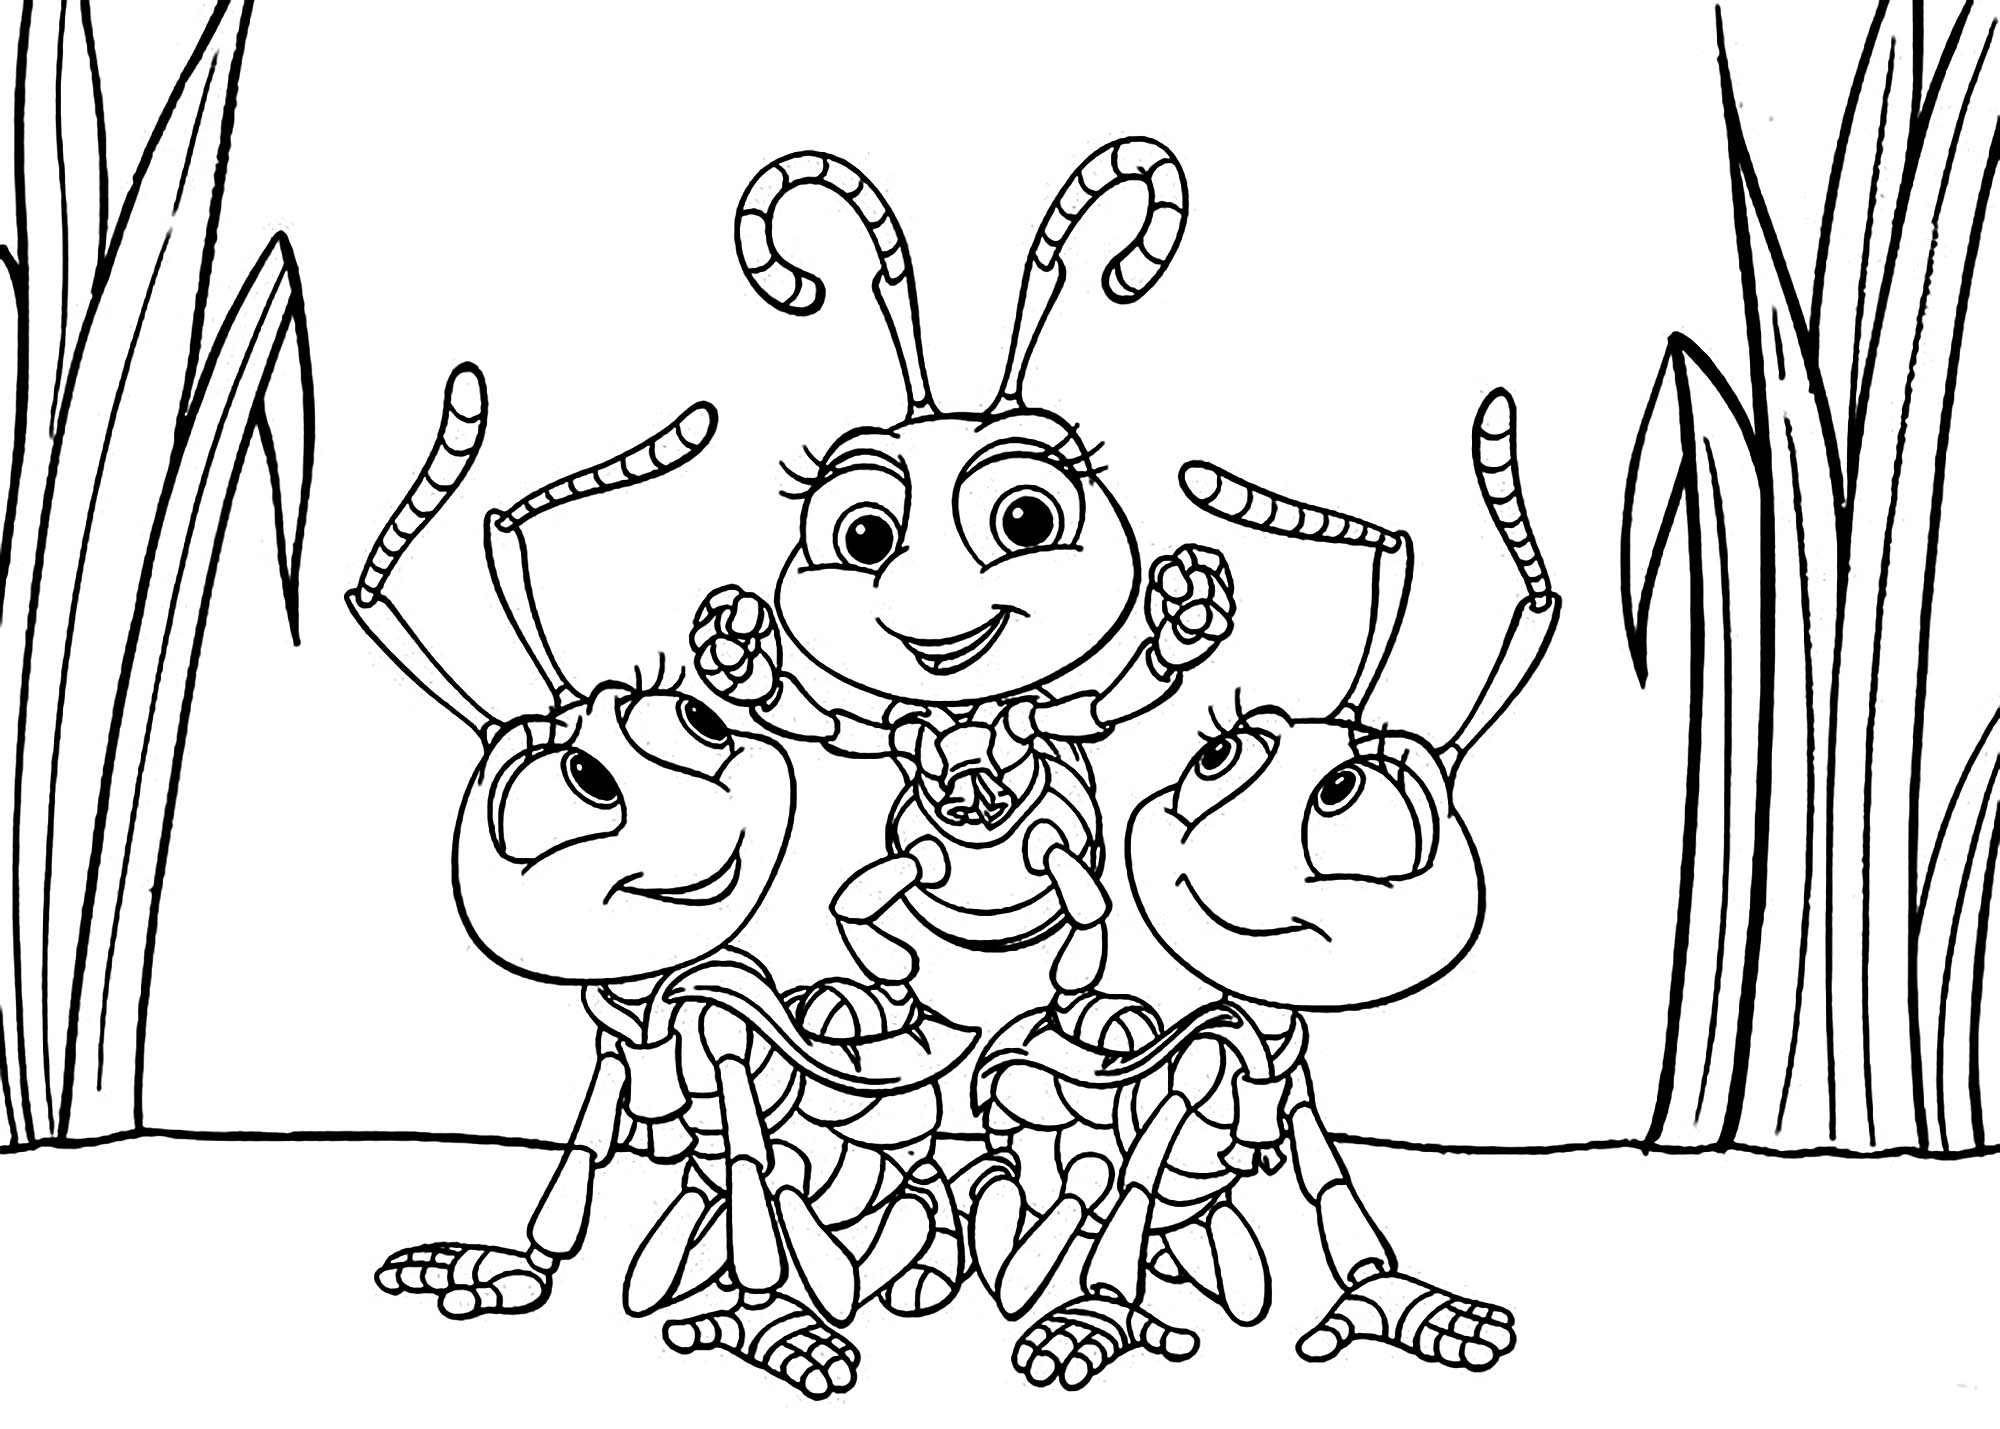 bug coloring pages free printable bug coloring pages for kids bug pages coloring 1 1